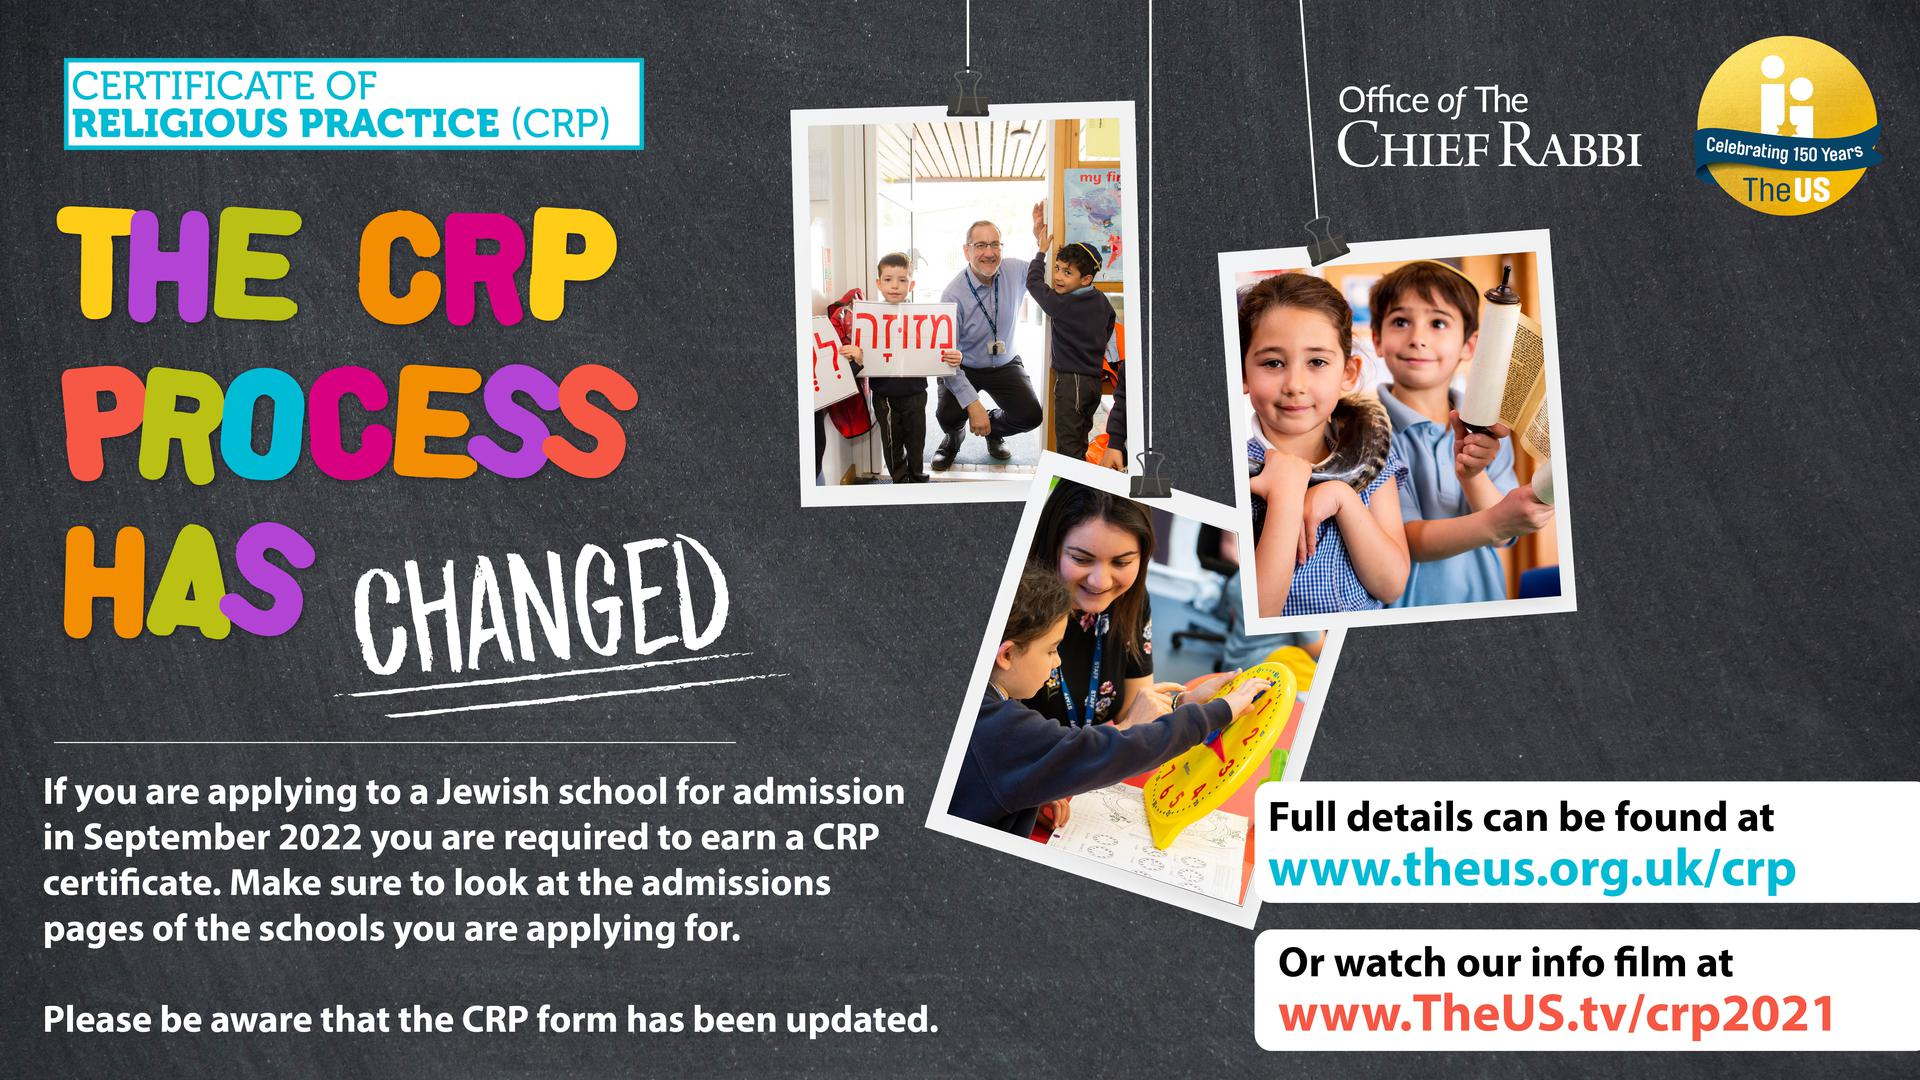 The CRP process has changed